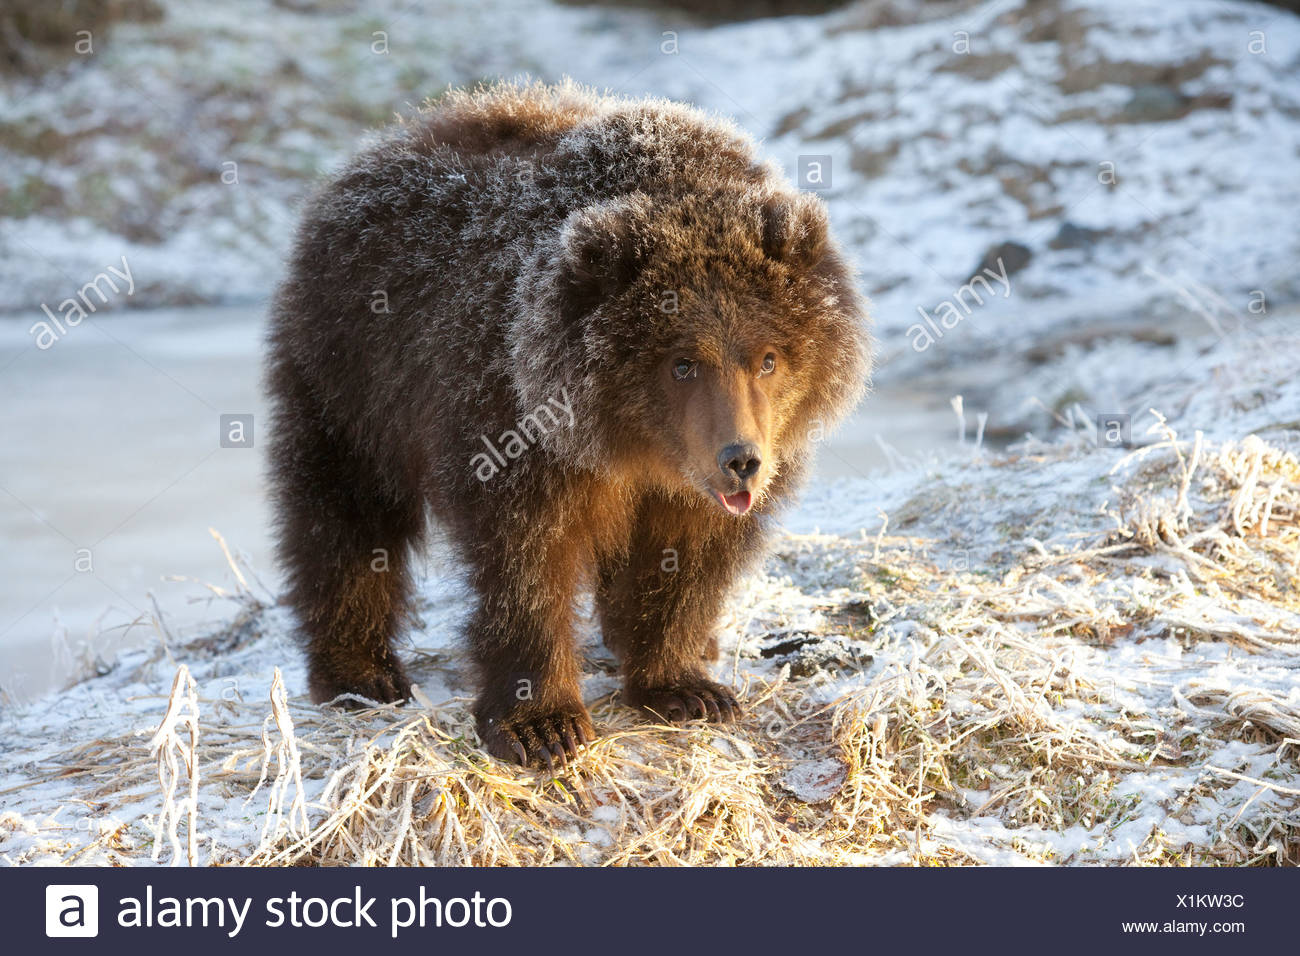 CAPTIVE: Kodiak Brown bear cub with frost covered fur standing on snowcovered ground,Alaska Wildlife Conservation Center, Alaska Stock Photo